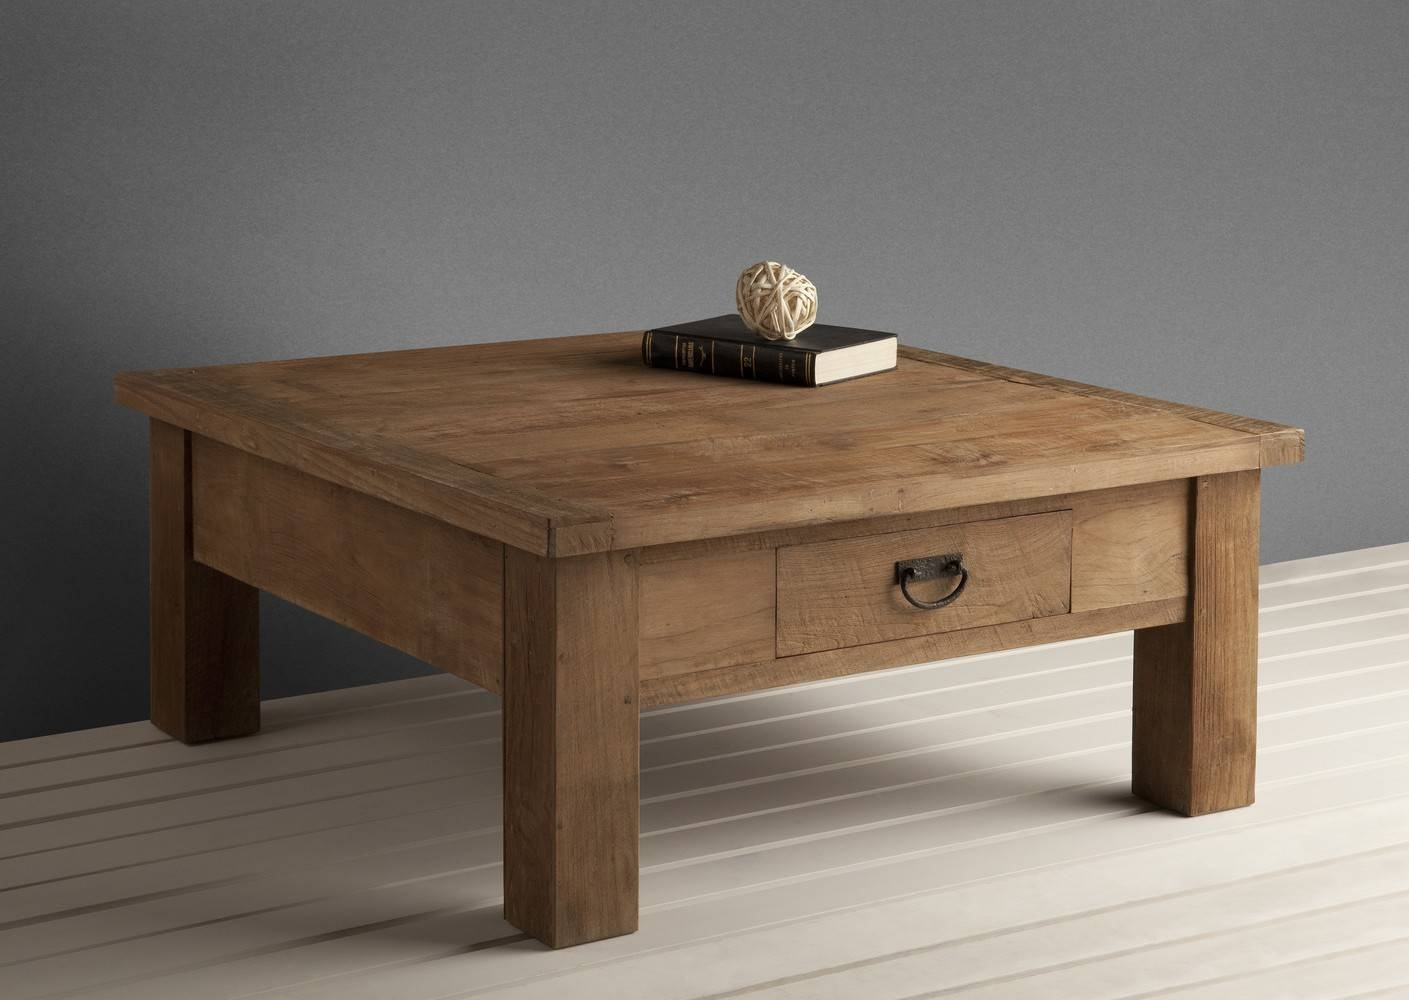 Top Solid Wood Coffee Table With Drawers In Small Home Interior within Small Coffee Tables With Drawer (Image 30 of 30)